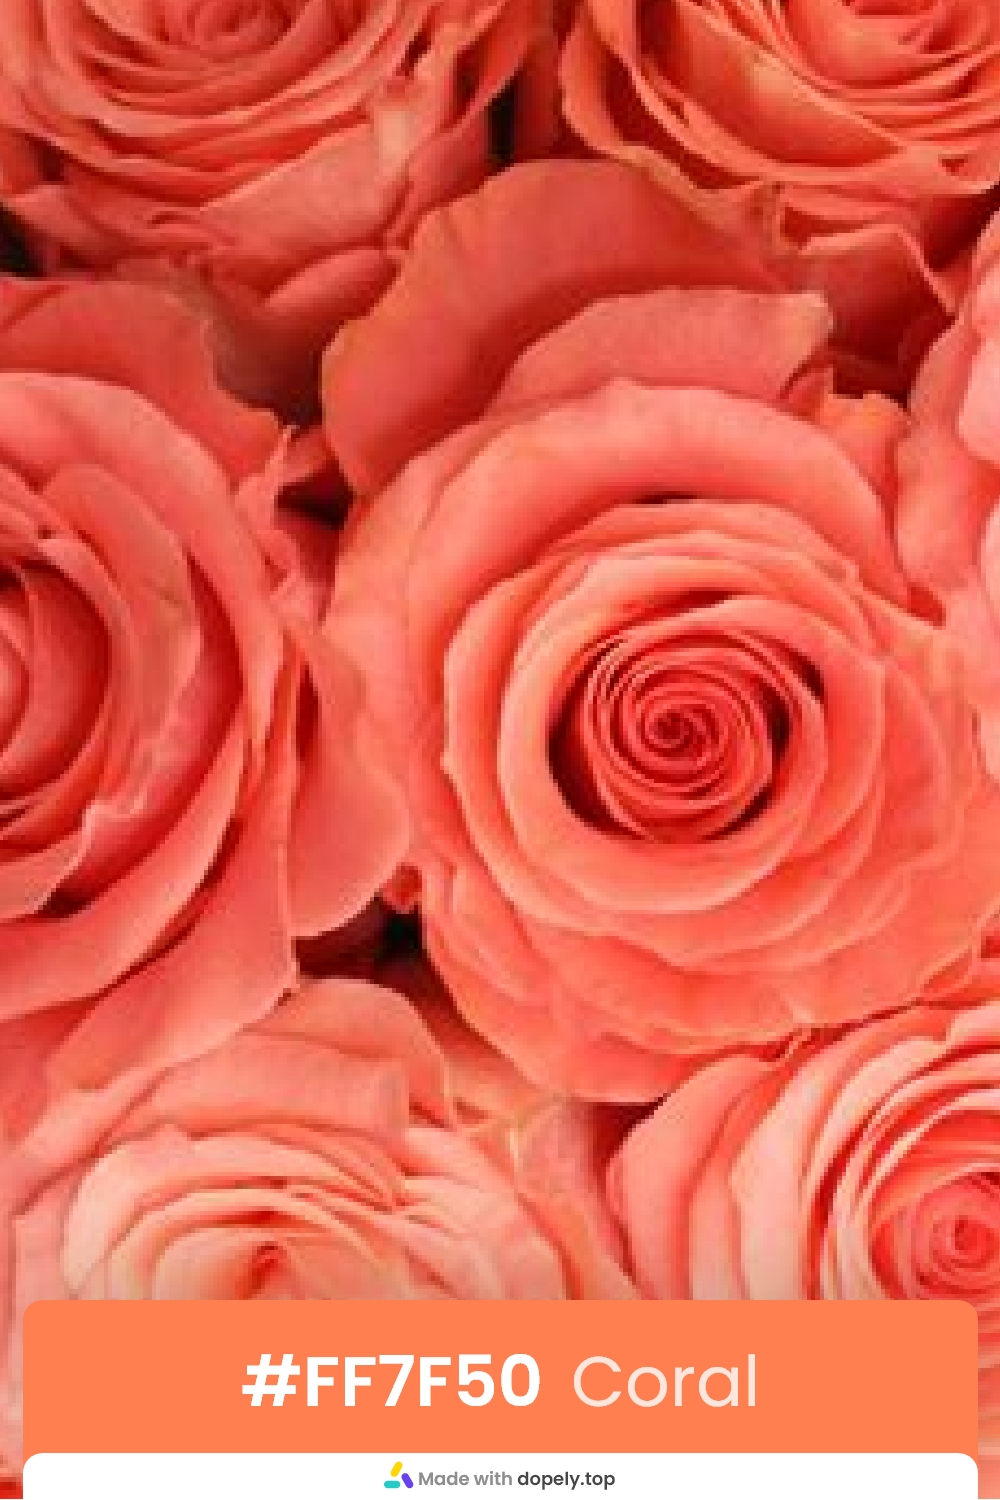 coral color rose flower meaning with hex code